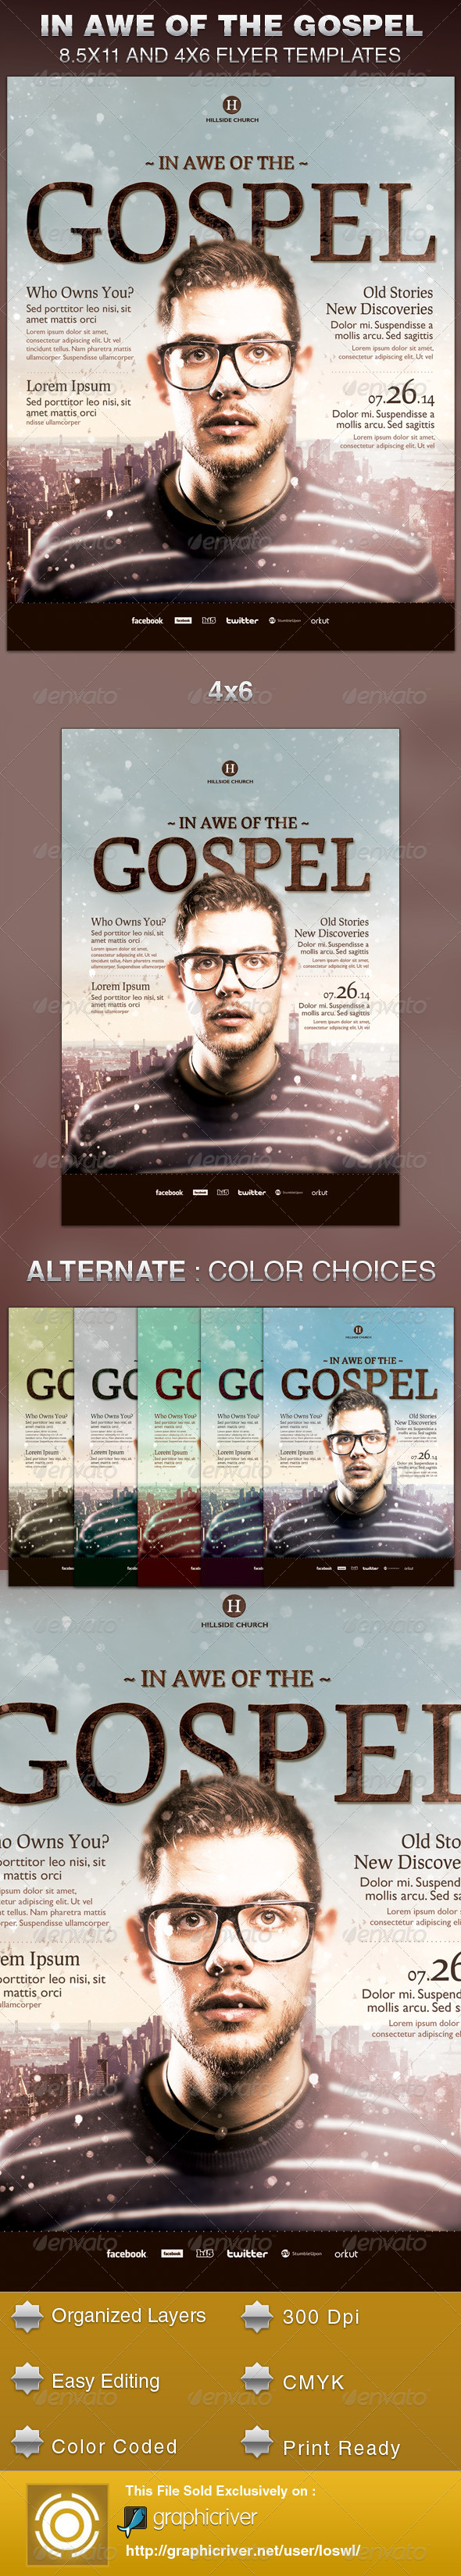 In Awe of the Gospel Church Flyer Template - Church Flyers